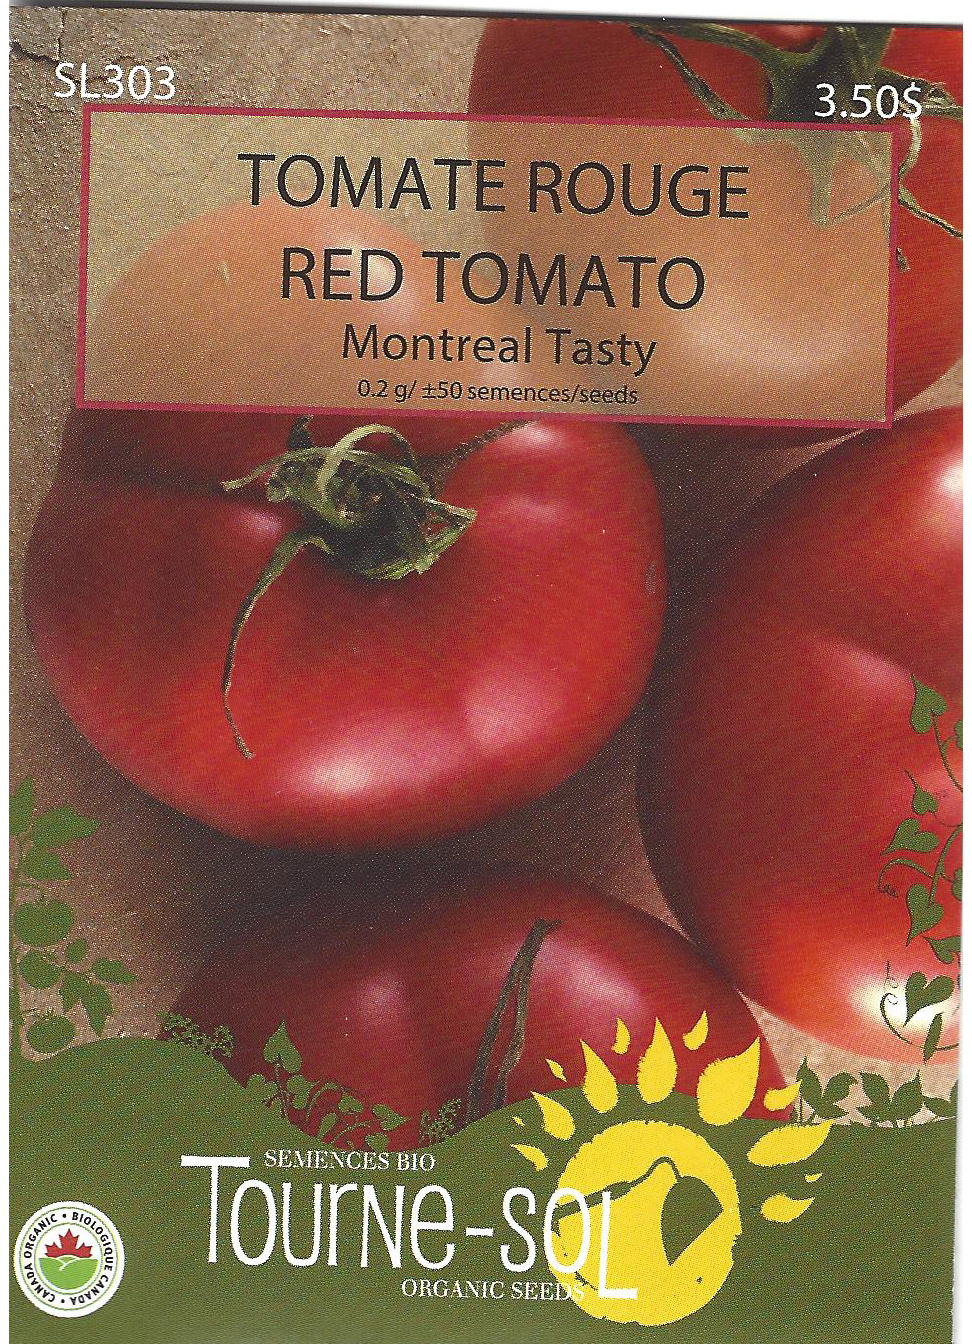 Semence Tourne-sol Tomate rouge Montreal Tasty